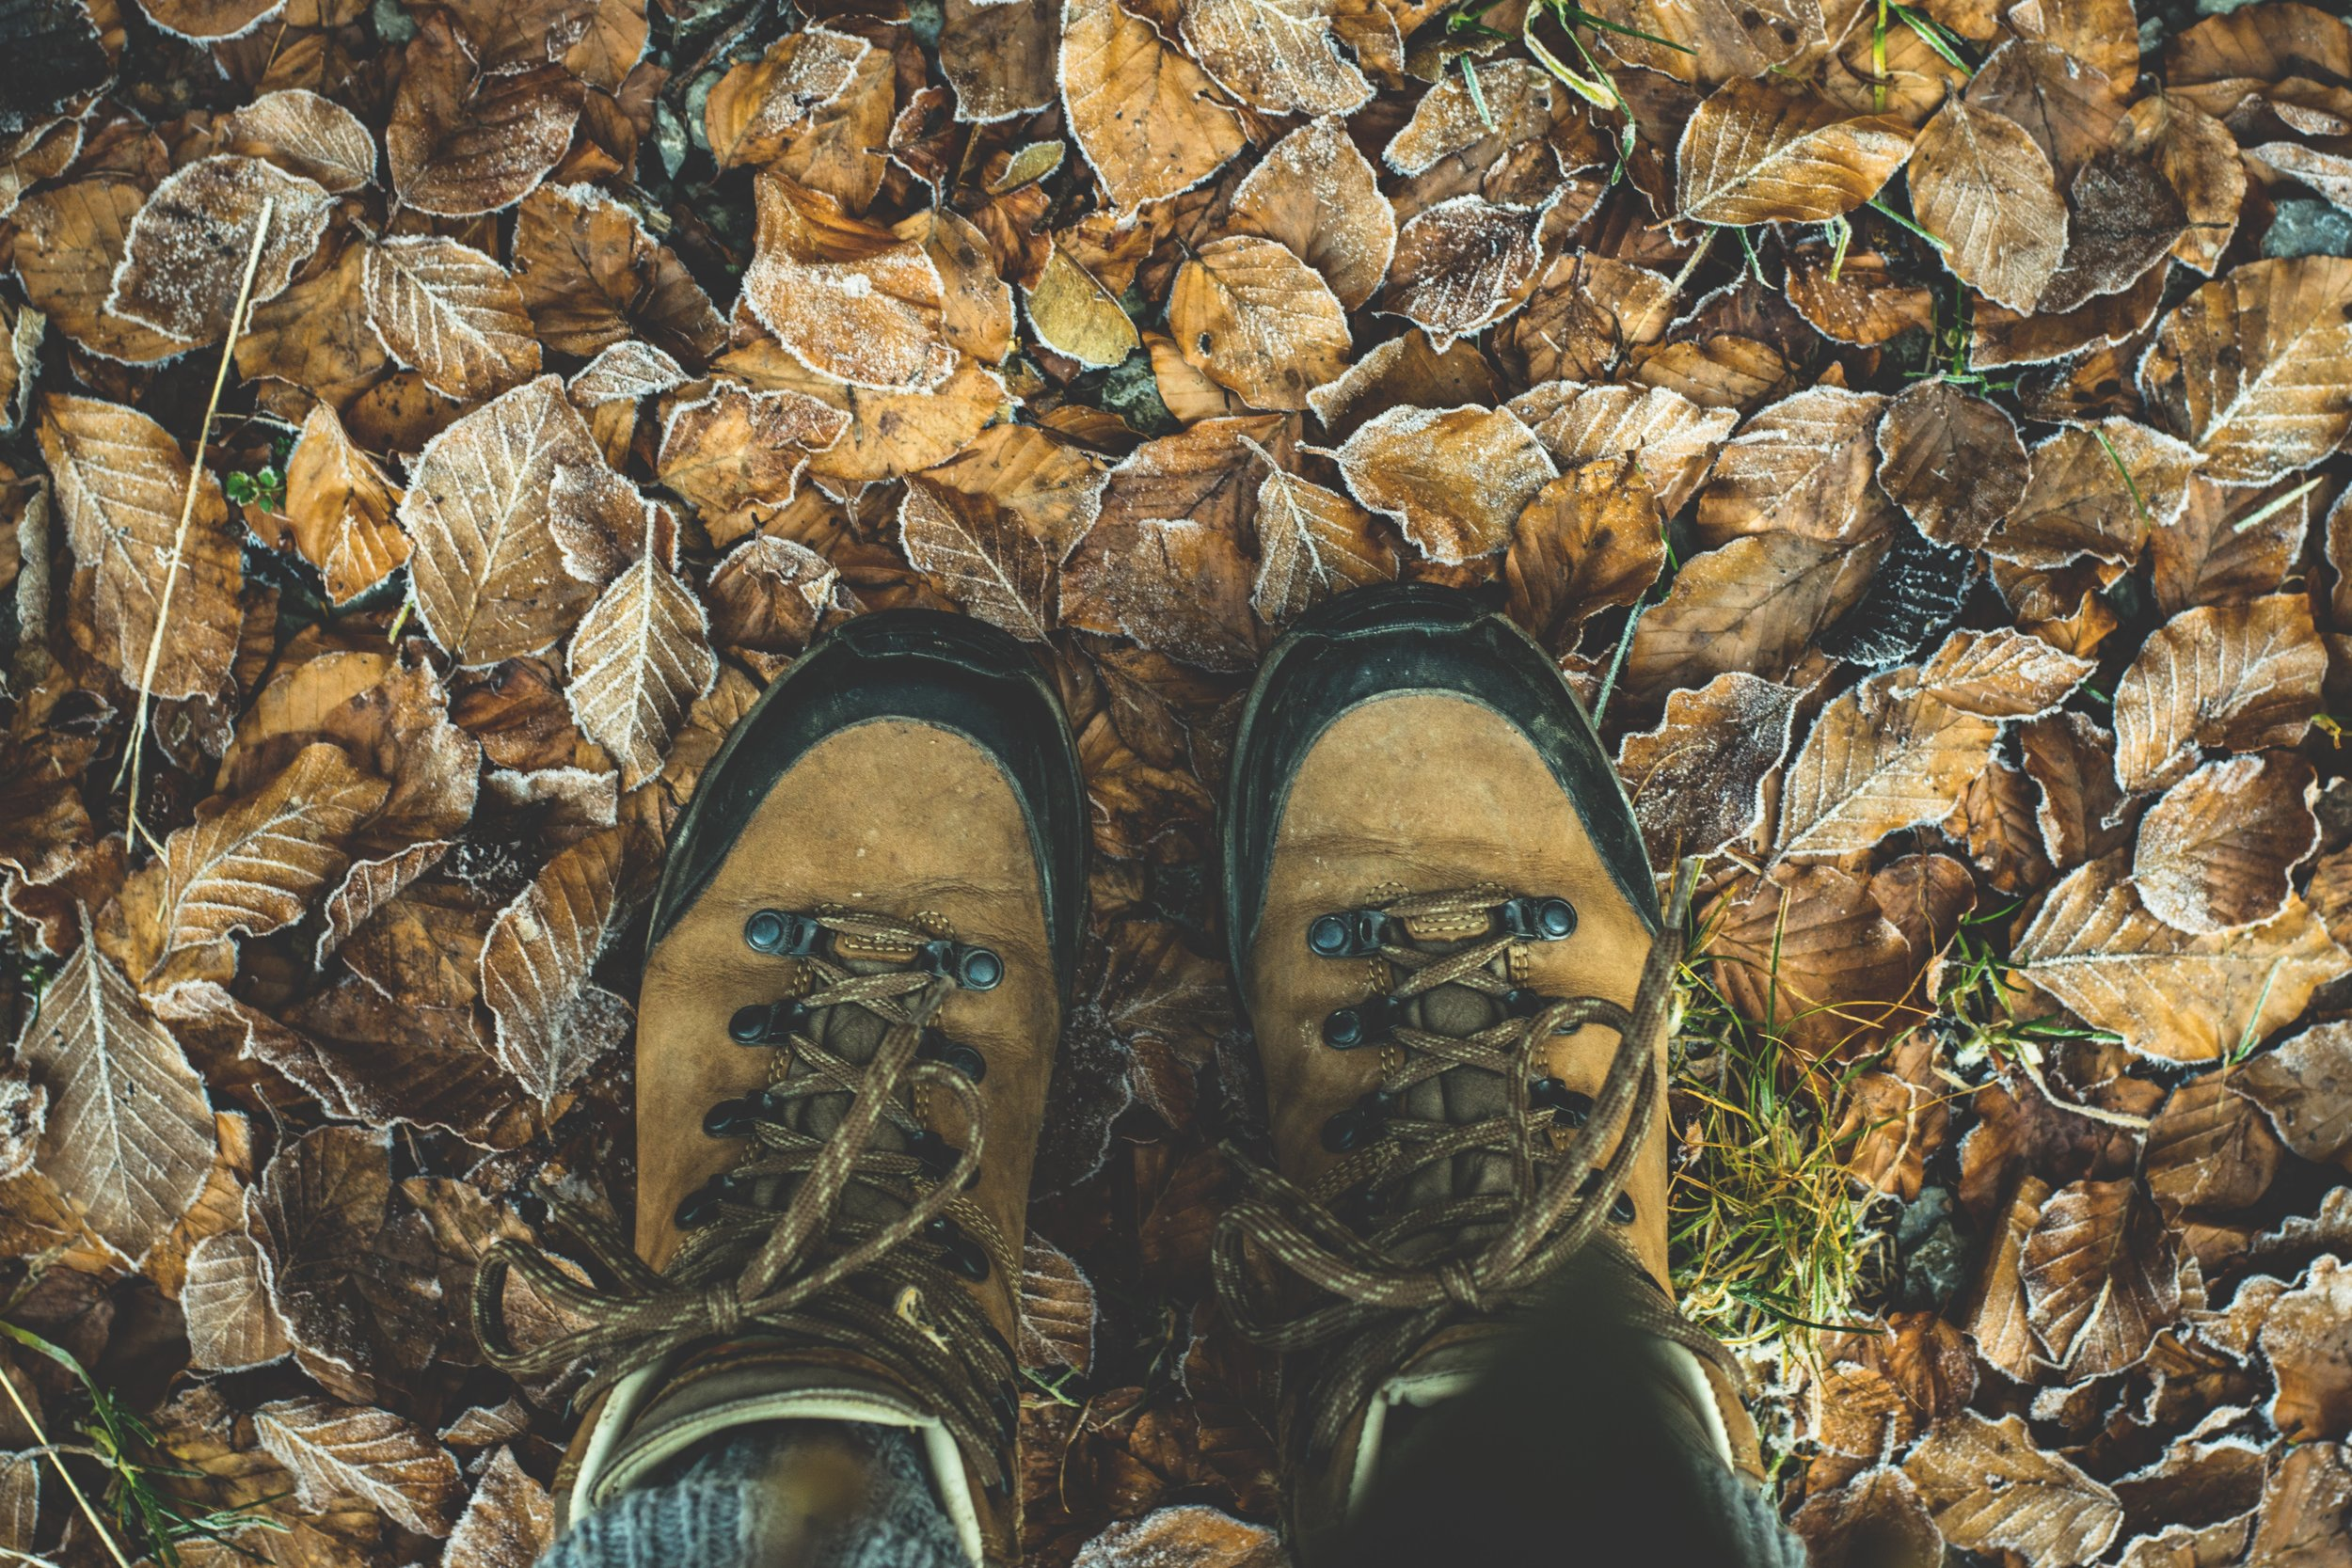 Enjoy walks Norfolk has to offer, bring your hiking boots